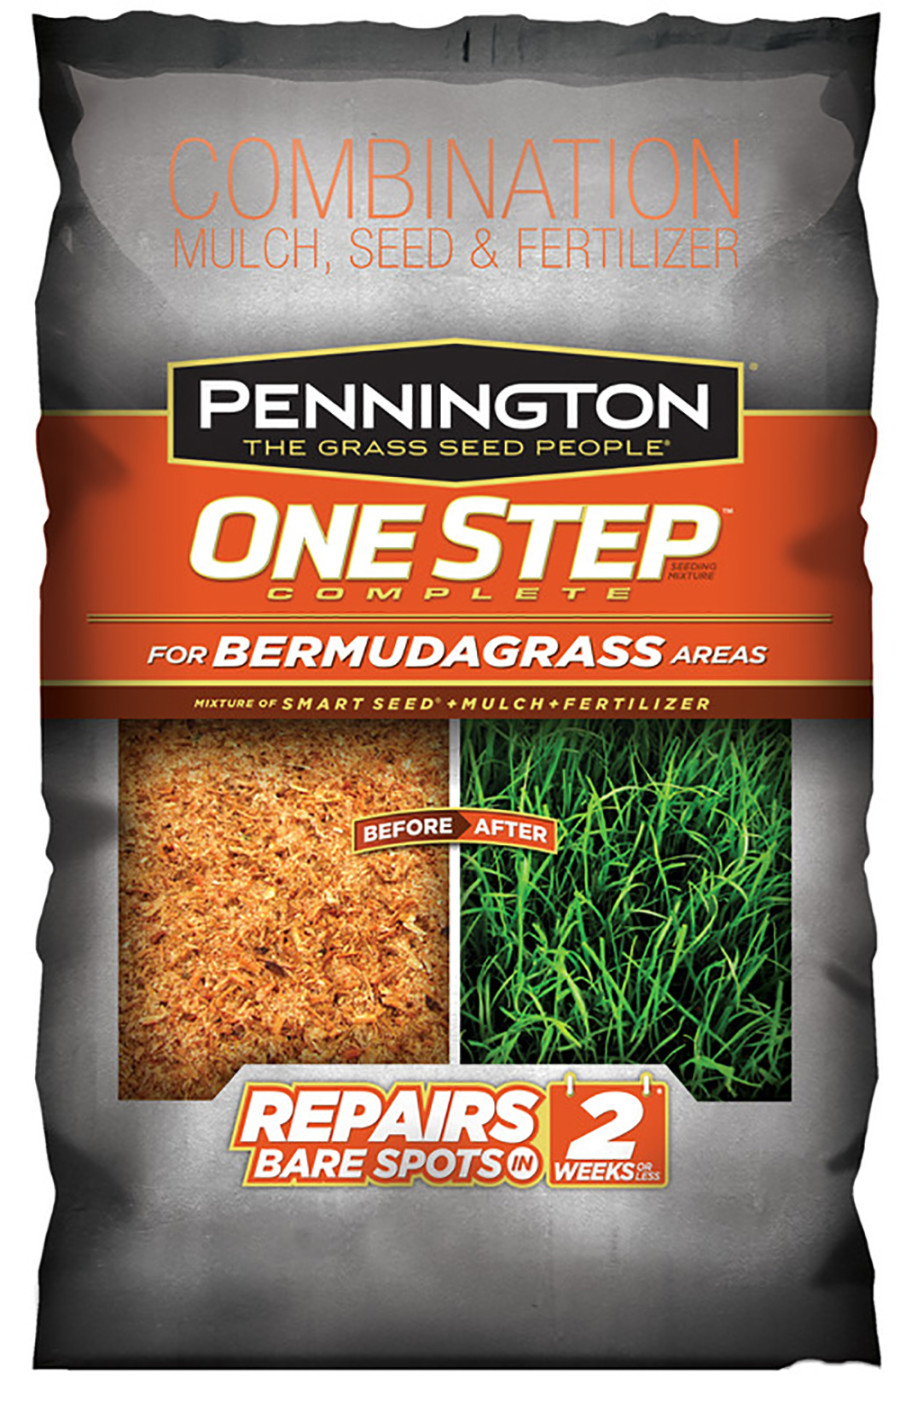 Pennington One Step Complete Bermudagrass Seed, Mulch, Fertilizer Premium Seed 36ea/8.3 lb